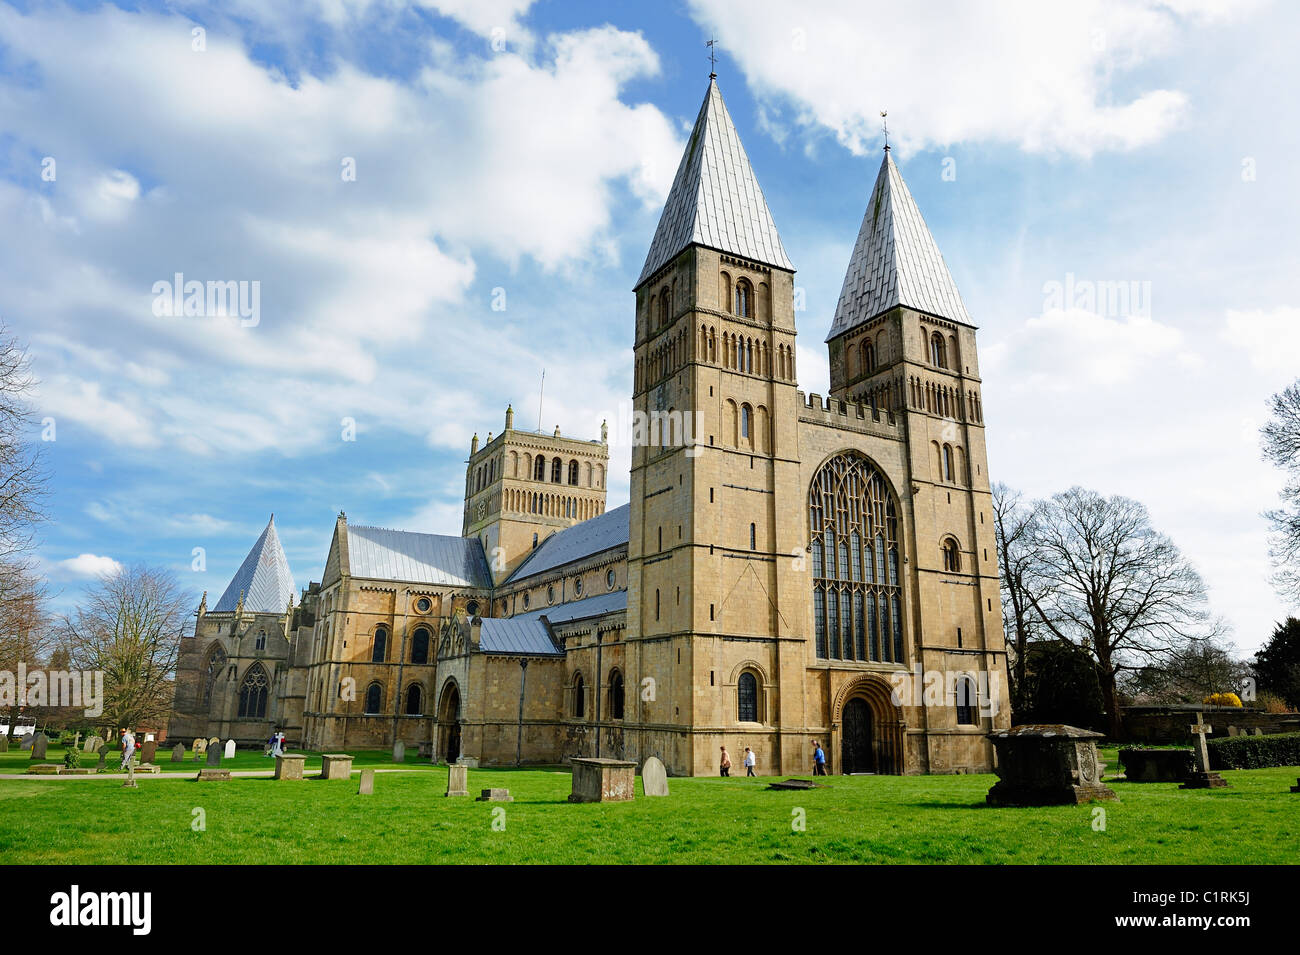 Southwell minster Nottingham england uk - Stock Image